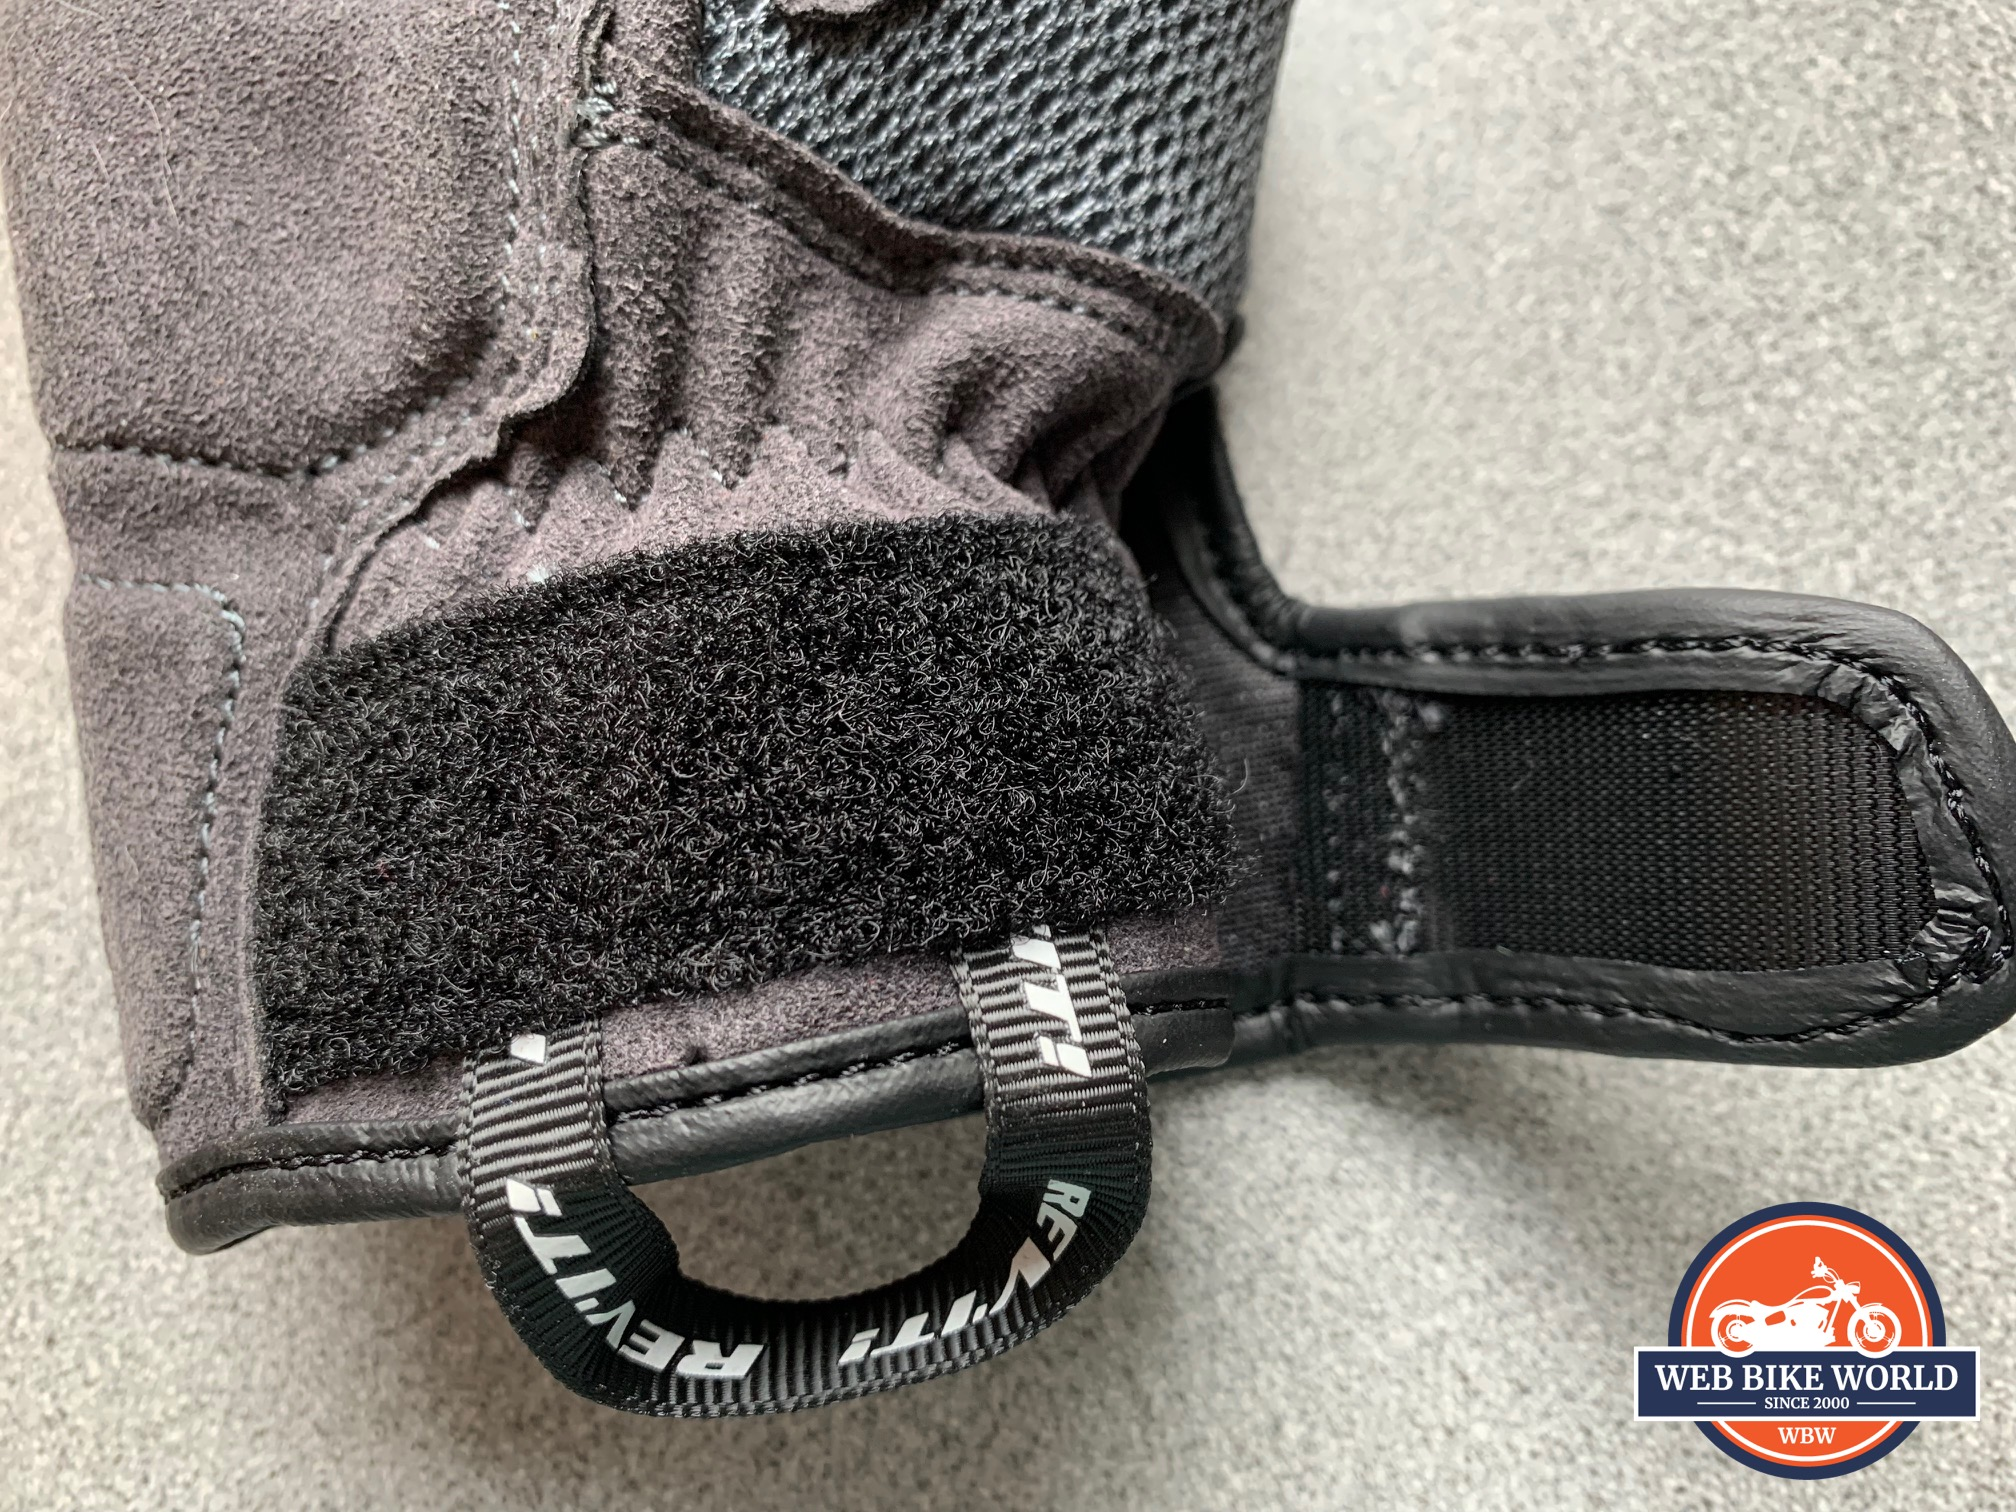 A view of the rather inadequate velcro strap on the REV'IT! Volcano gloves